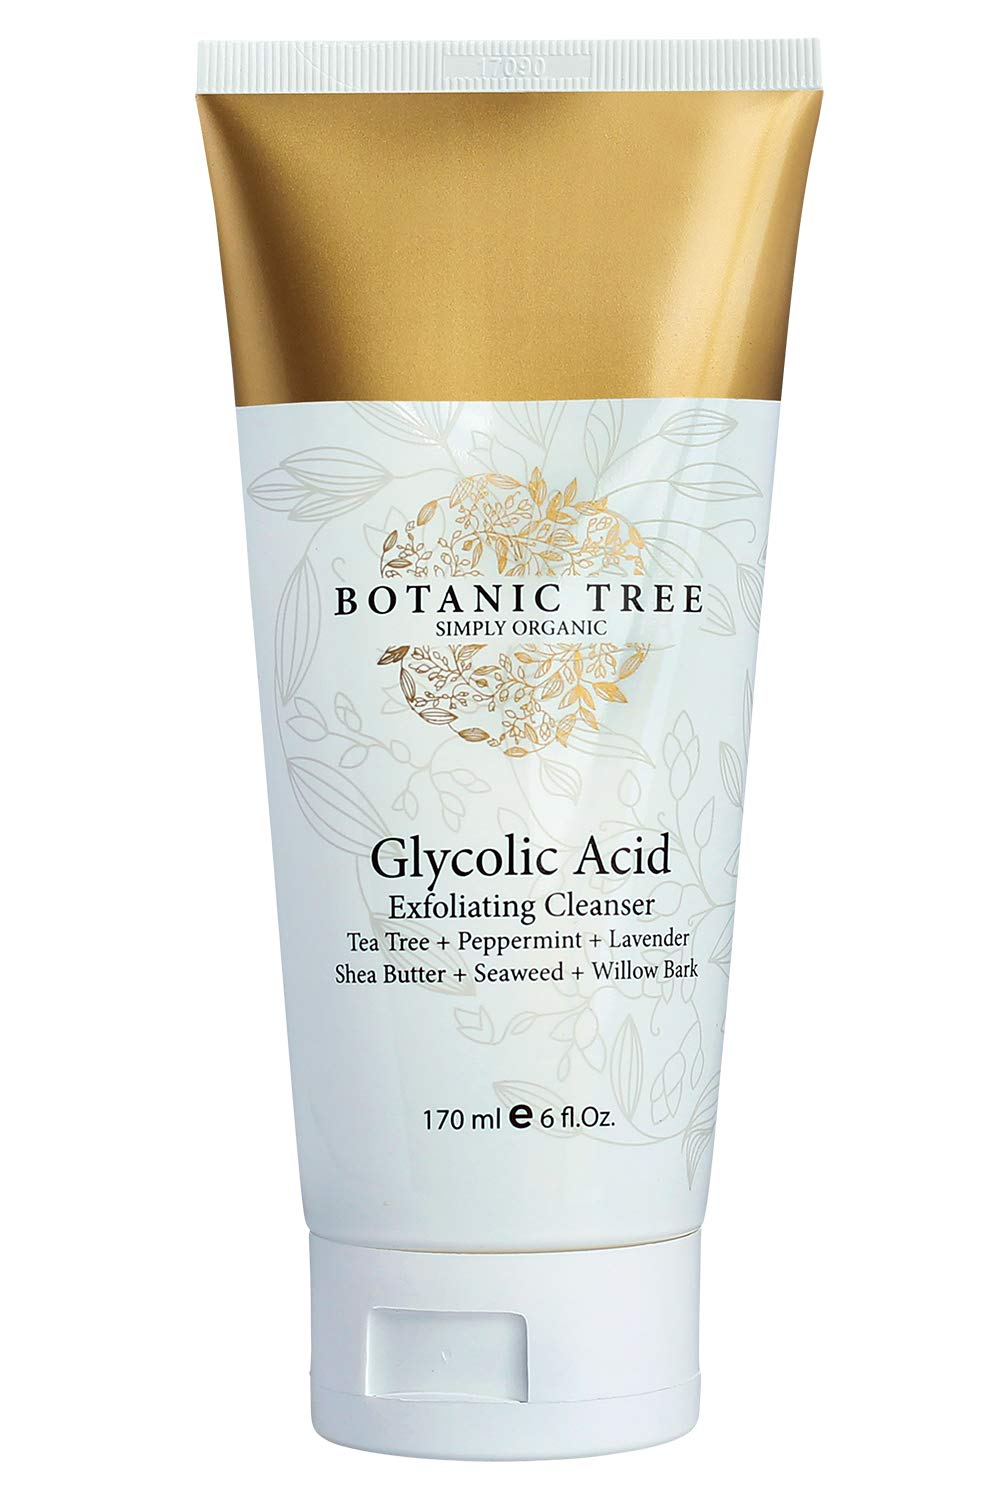 Glycolic Acid Face Wash Exfoliating Cleanser 6Oz w/10% Glycolic Acid- AHA For Wrinkles and Lines Reduction-Acne Face Wash For a Deep Clean-100% Organic Extracts. by Botanic Tree